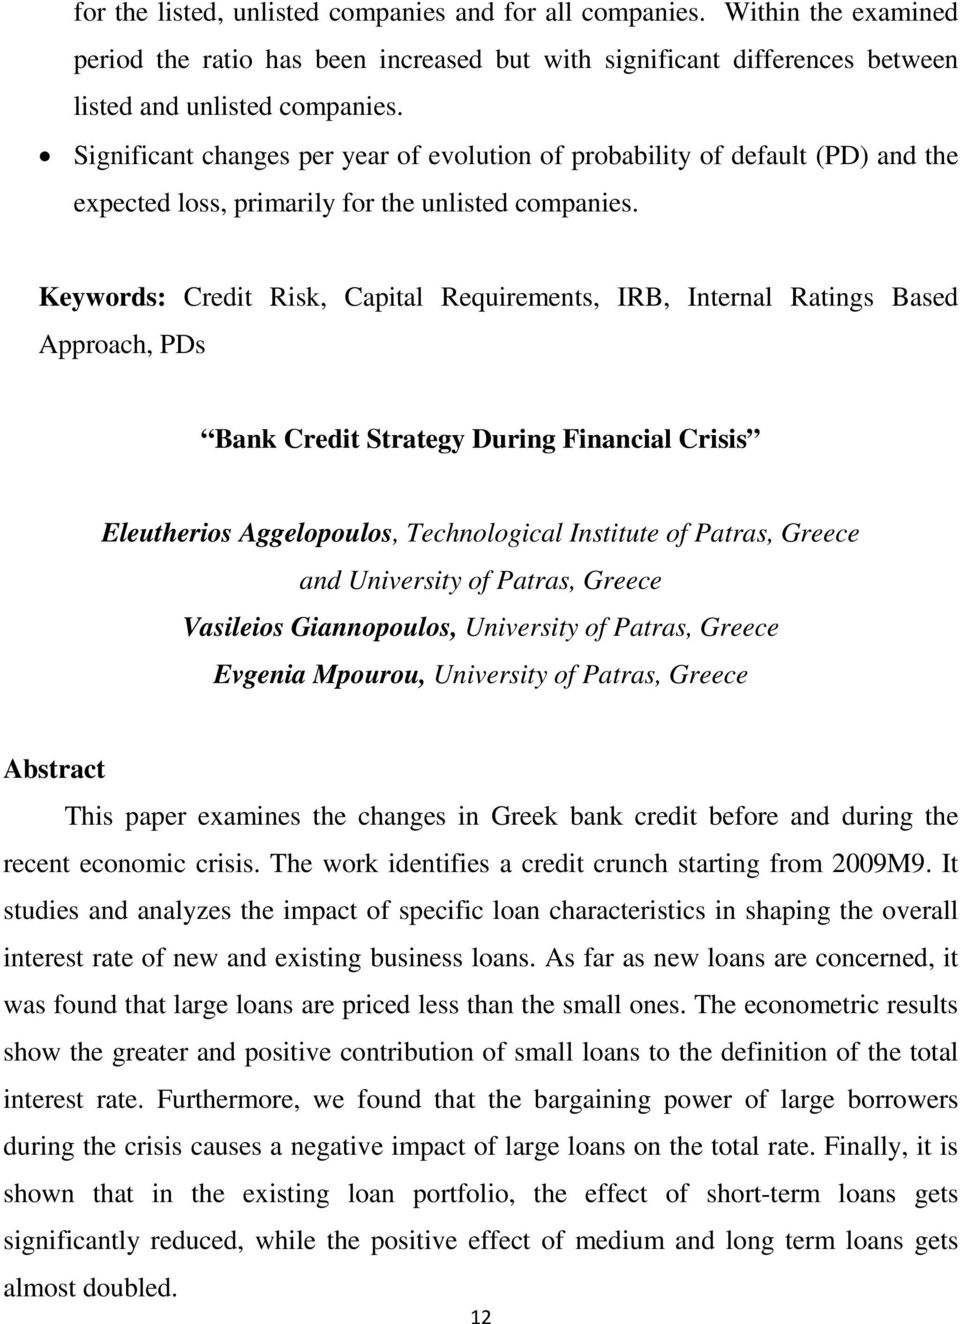 Keywords: Credit Risk, Capital Requirements, IRB, Internal Ratings Based Approach, PDs Bank Credit Strategy During Financial Crisis Eleutherios Aggelopoulos, Technological Institute of Patras, Greece